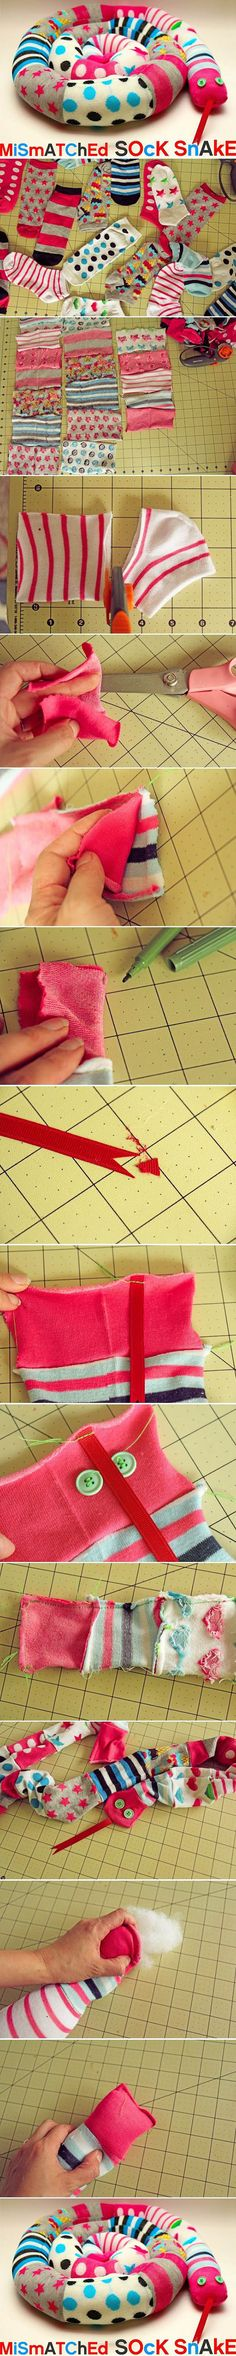 Diy Cute Snake | DIY & Crafts Tutorials REVIEW: This is SUPER cute when completed. We had so many mismatched socks that ours is almost 6 feet long.  One tip is that you should definitely use a sewing machine for the long seam.  Also, leave 2 or 3 gaps in the long seam for stuffing after turning right side out - it is nearly impossible to stuff the whole length of a six-foot snake from just a hole at the end.  Use a hidden stitch to close those gaps once stuffed.